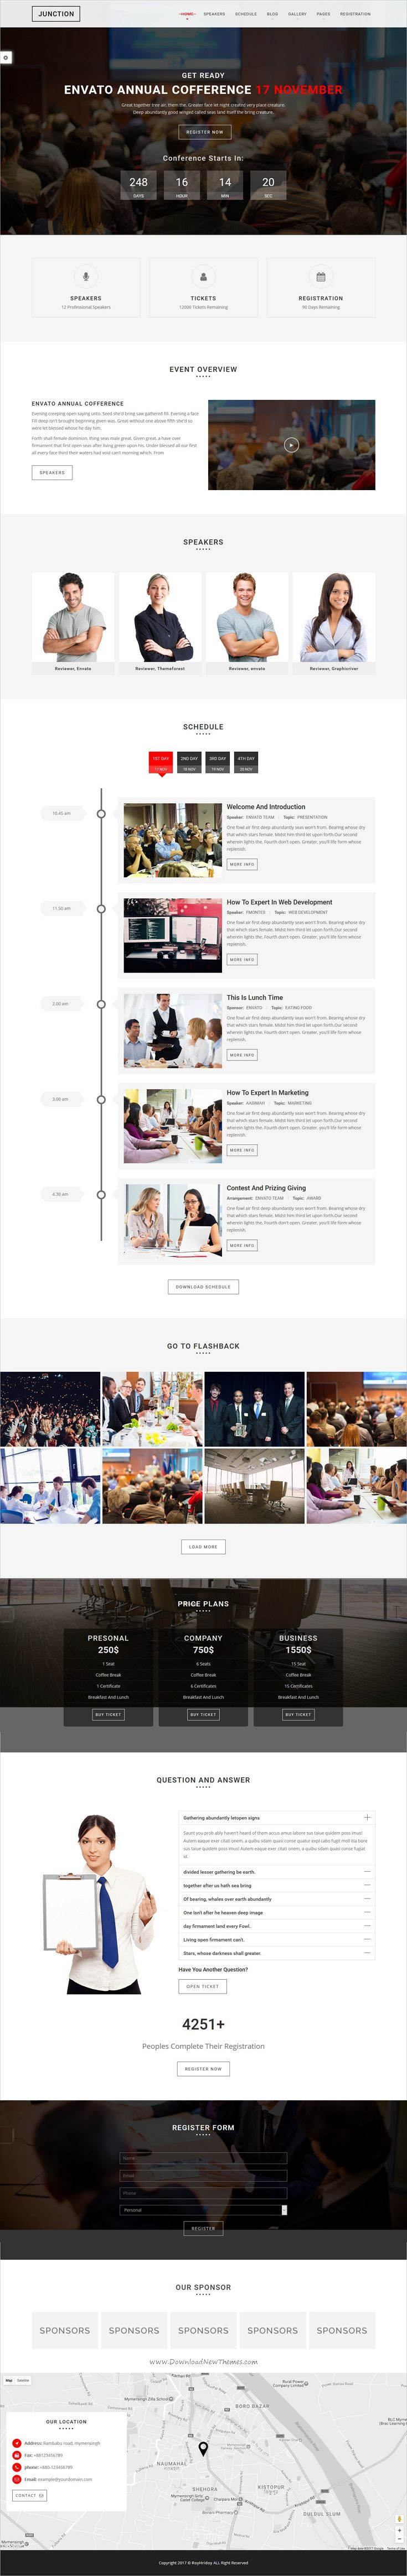 Junction is modern and clean design responsive HTML #bootstrap template for #conference, #meetup , seminar, function, festival, business or any kind of event websites download now➩ https://themeforest.net/item/junction-event-meeting-conference-business-template/19390956?ref=Datasata